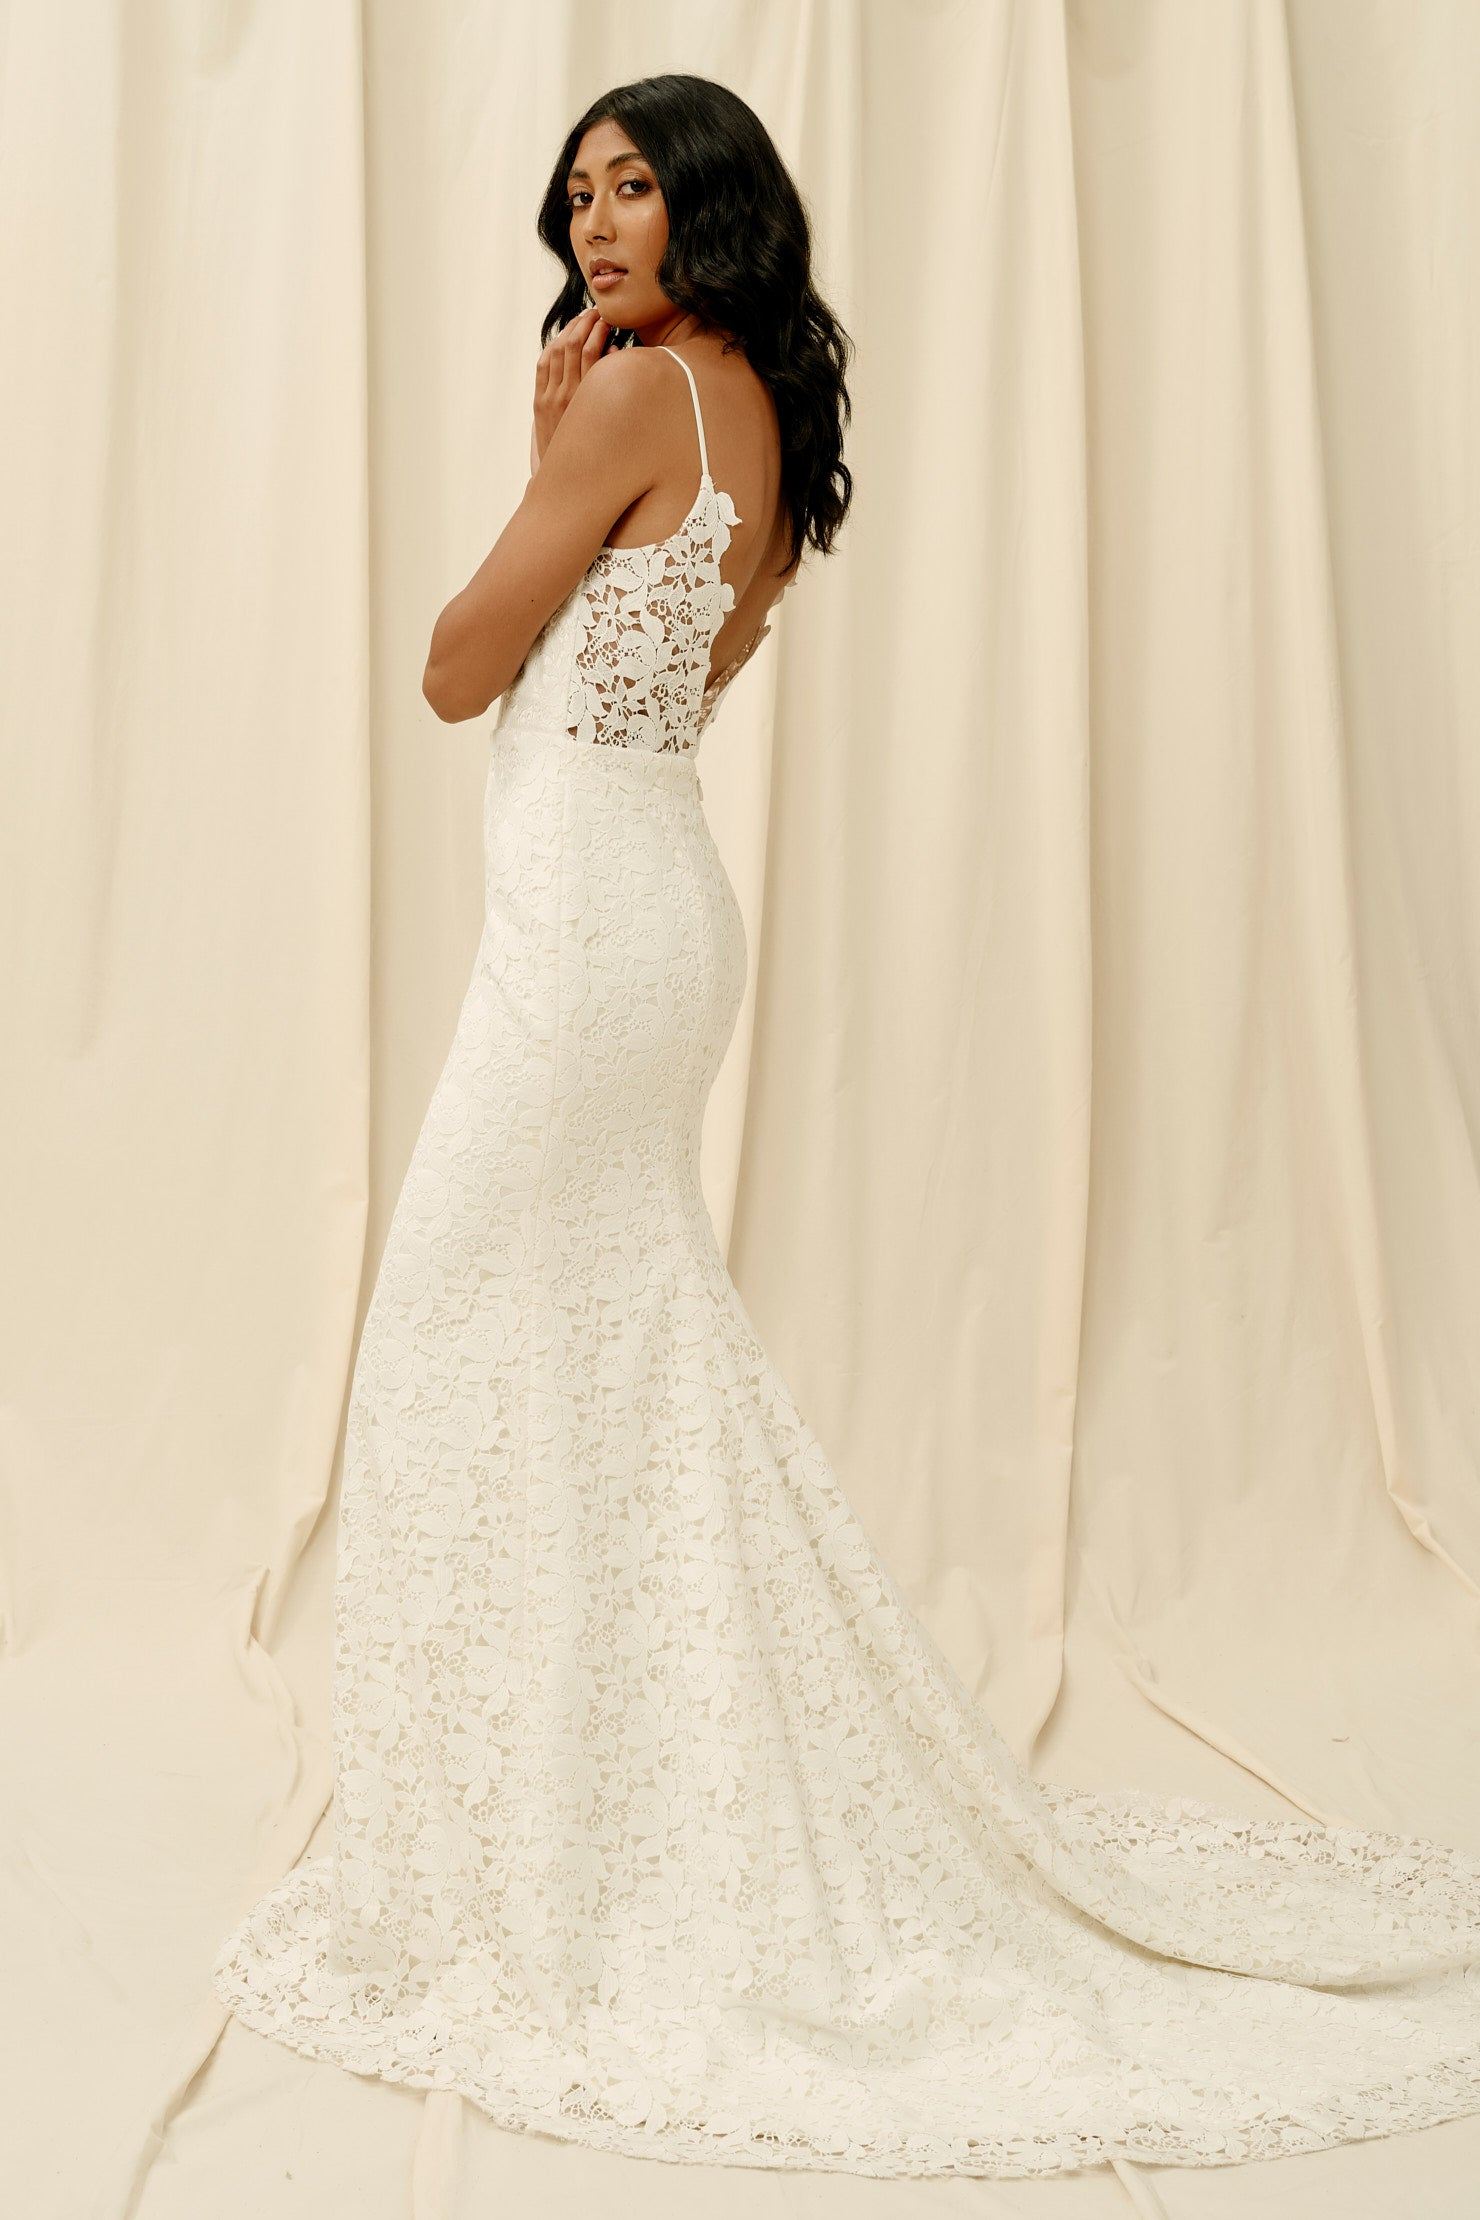 Mermaid skirt wedding dress with floral lace